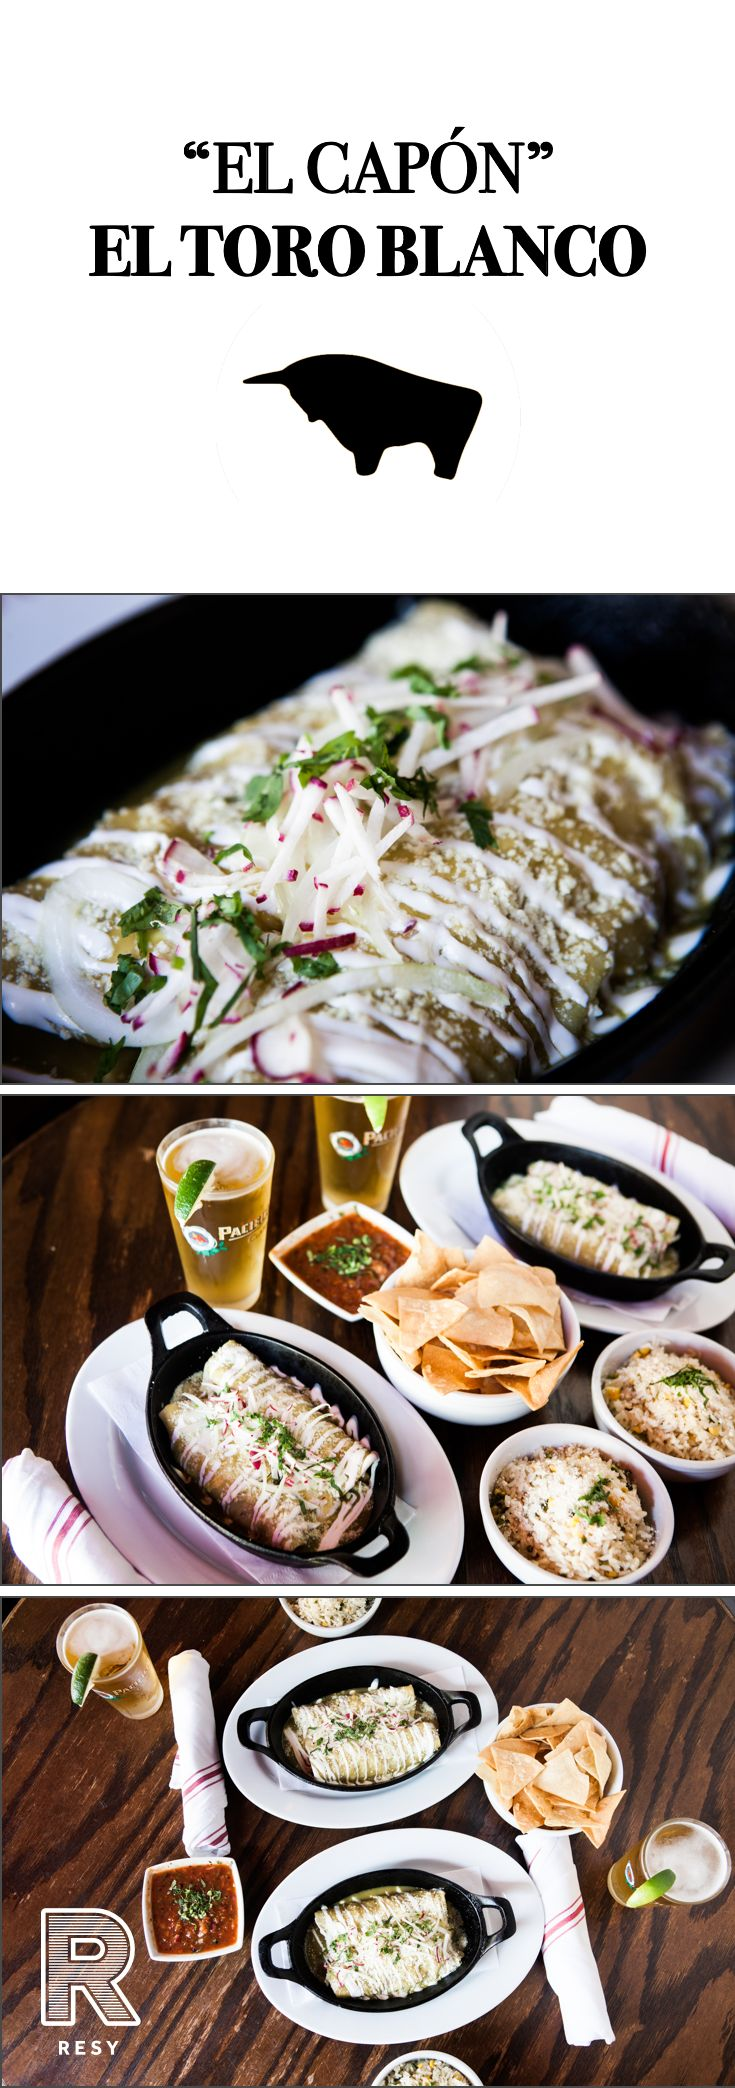 """El Capón"" is chicken enchiladas, chips, salsa and a Pacifico at El Toro Blanco in NYC - one of the city's favorite Mexican Restaurant & Tequila Bars.   Reservations are pre-paid for two guests and are booked exclusively via Resy.  Download the app and grab a seat!"